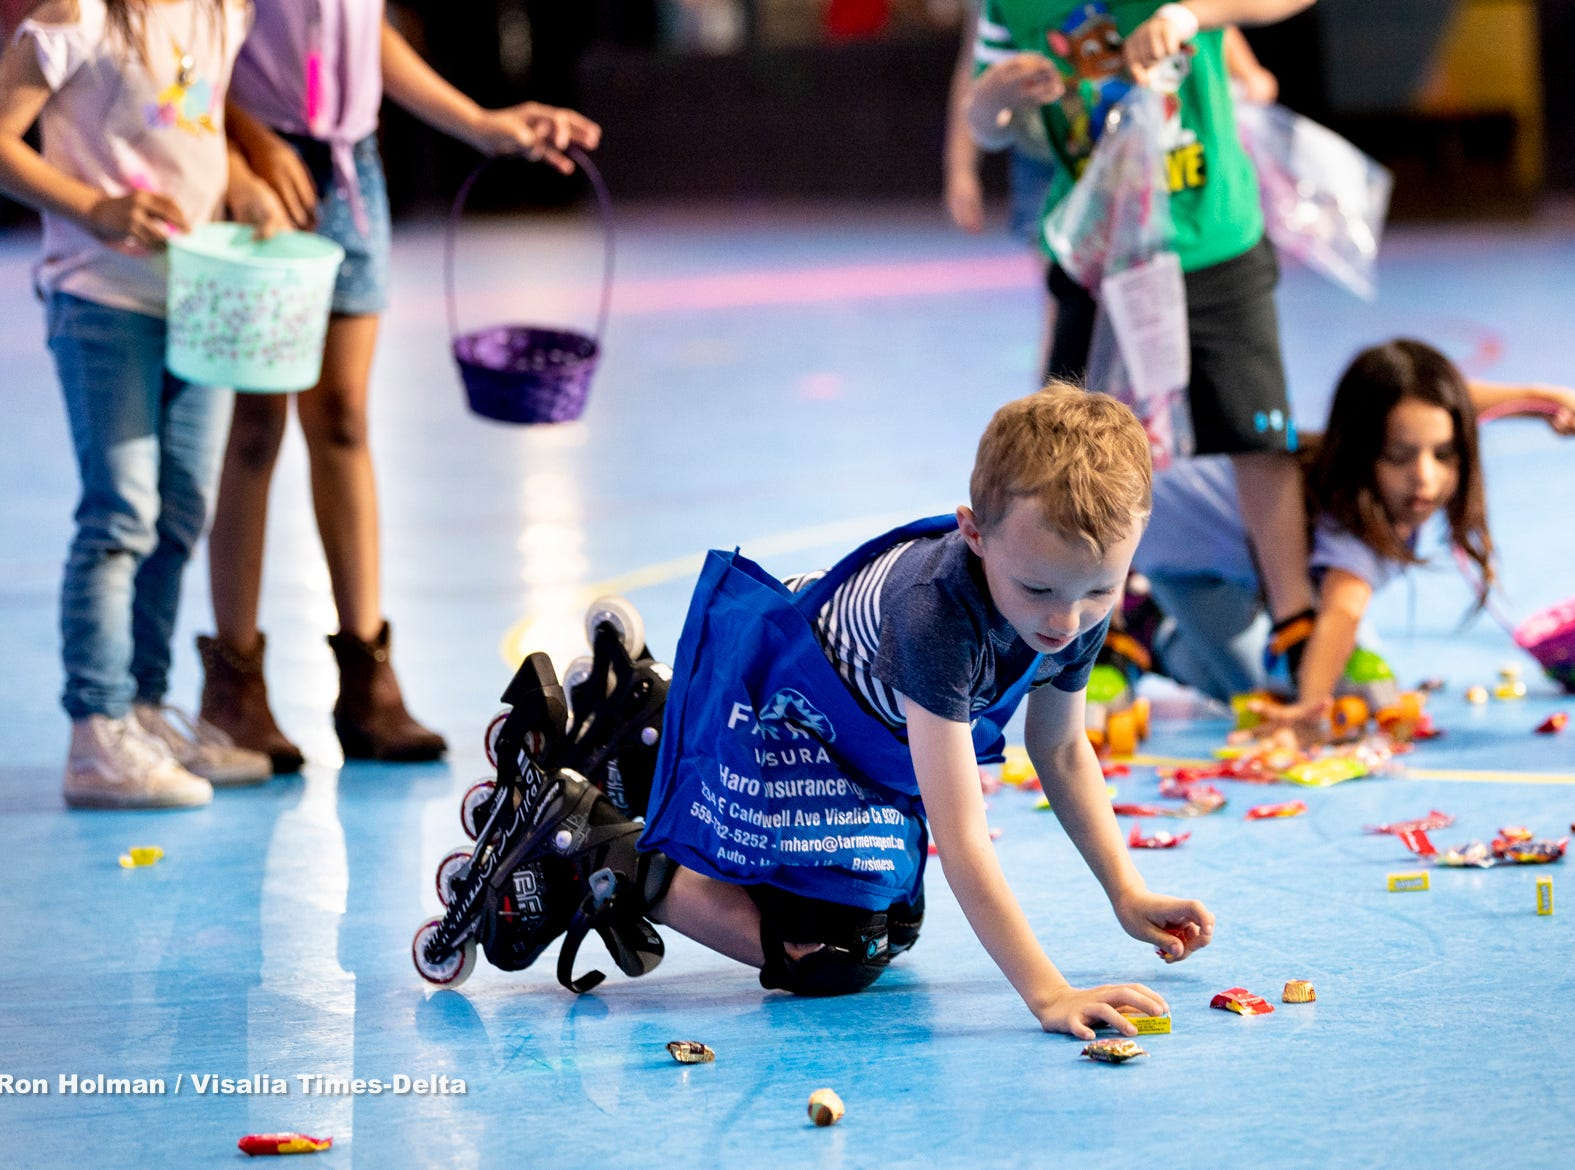 Luke Arsenaulz, 6, and other skaters at Roller Towne in Visalia scramble for candy and prizes during their pre-Easter egg hunt on Friday, April 19, 2019.